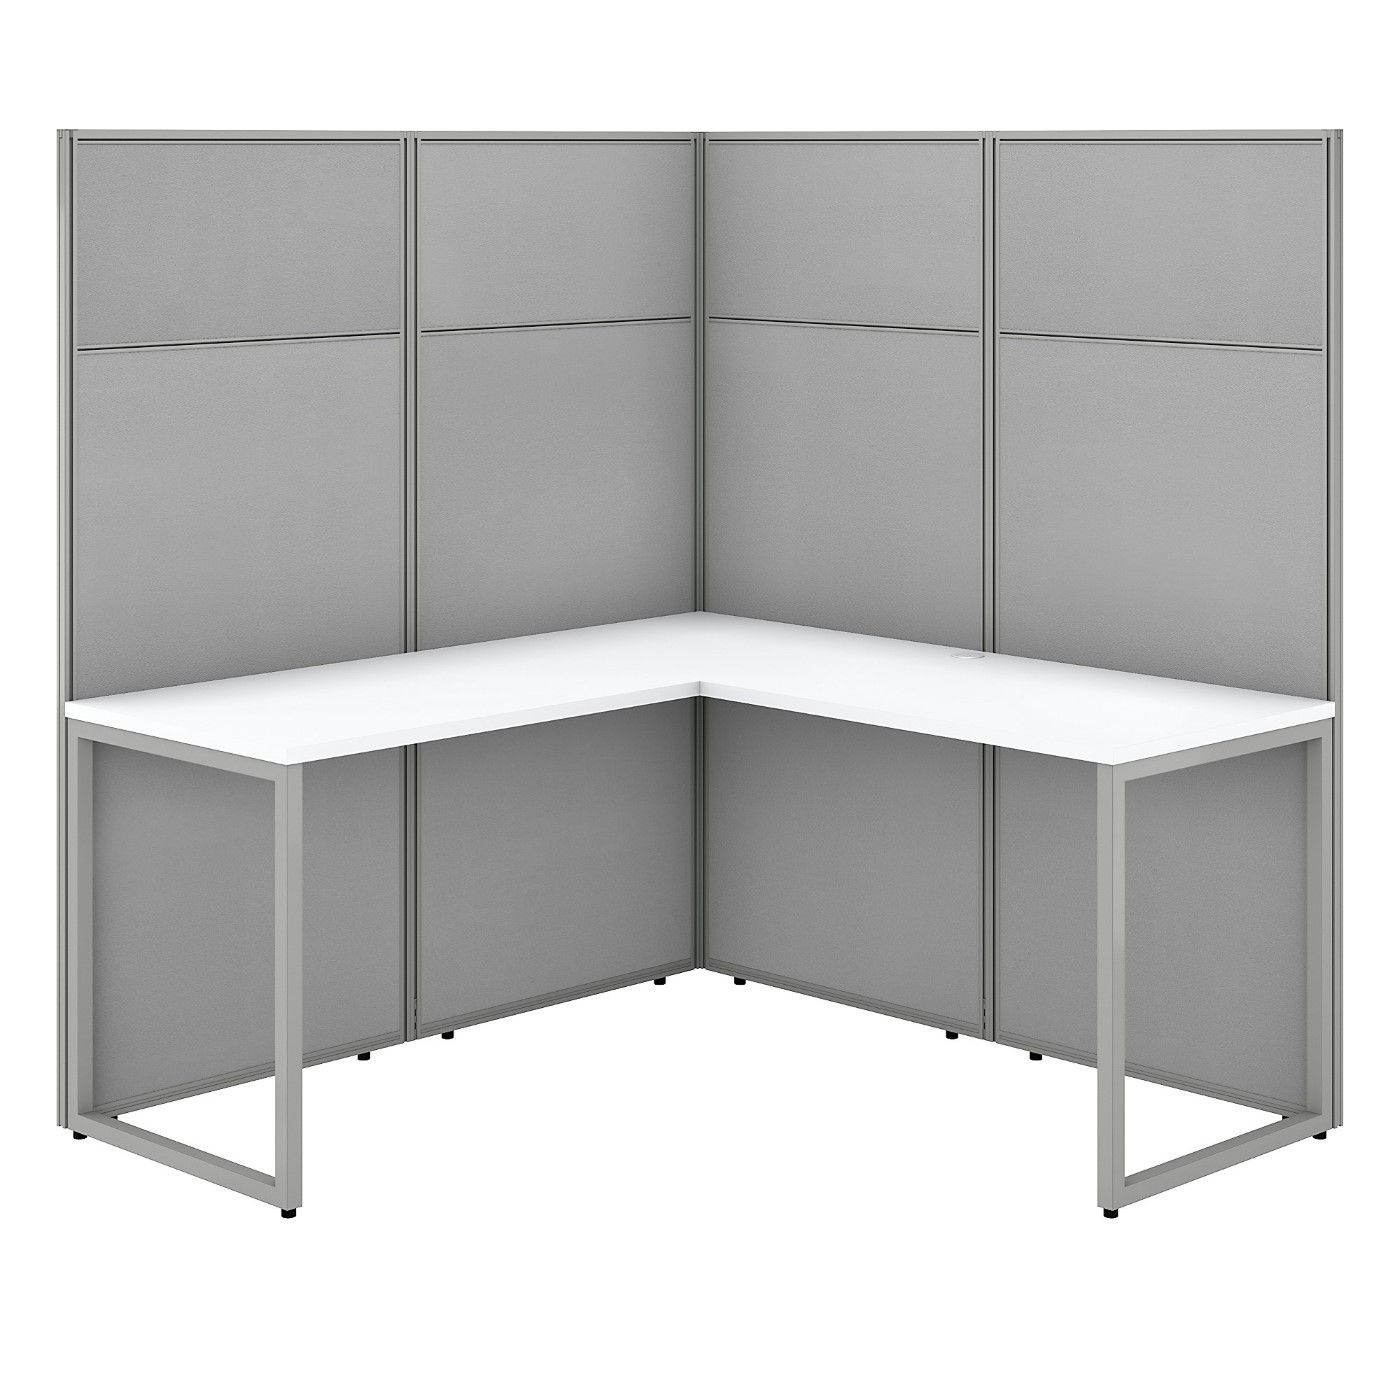 BUSH BUSINESS FURNITURE EASY OFFICE 60W L SHAPED CUBICLE DESK WORKSTATION WITH 66H PANELS. FREE SHIPPING